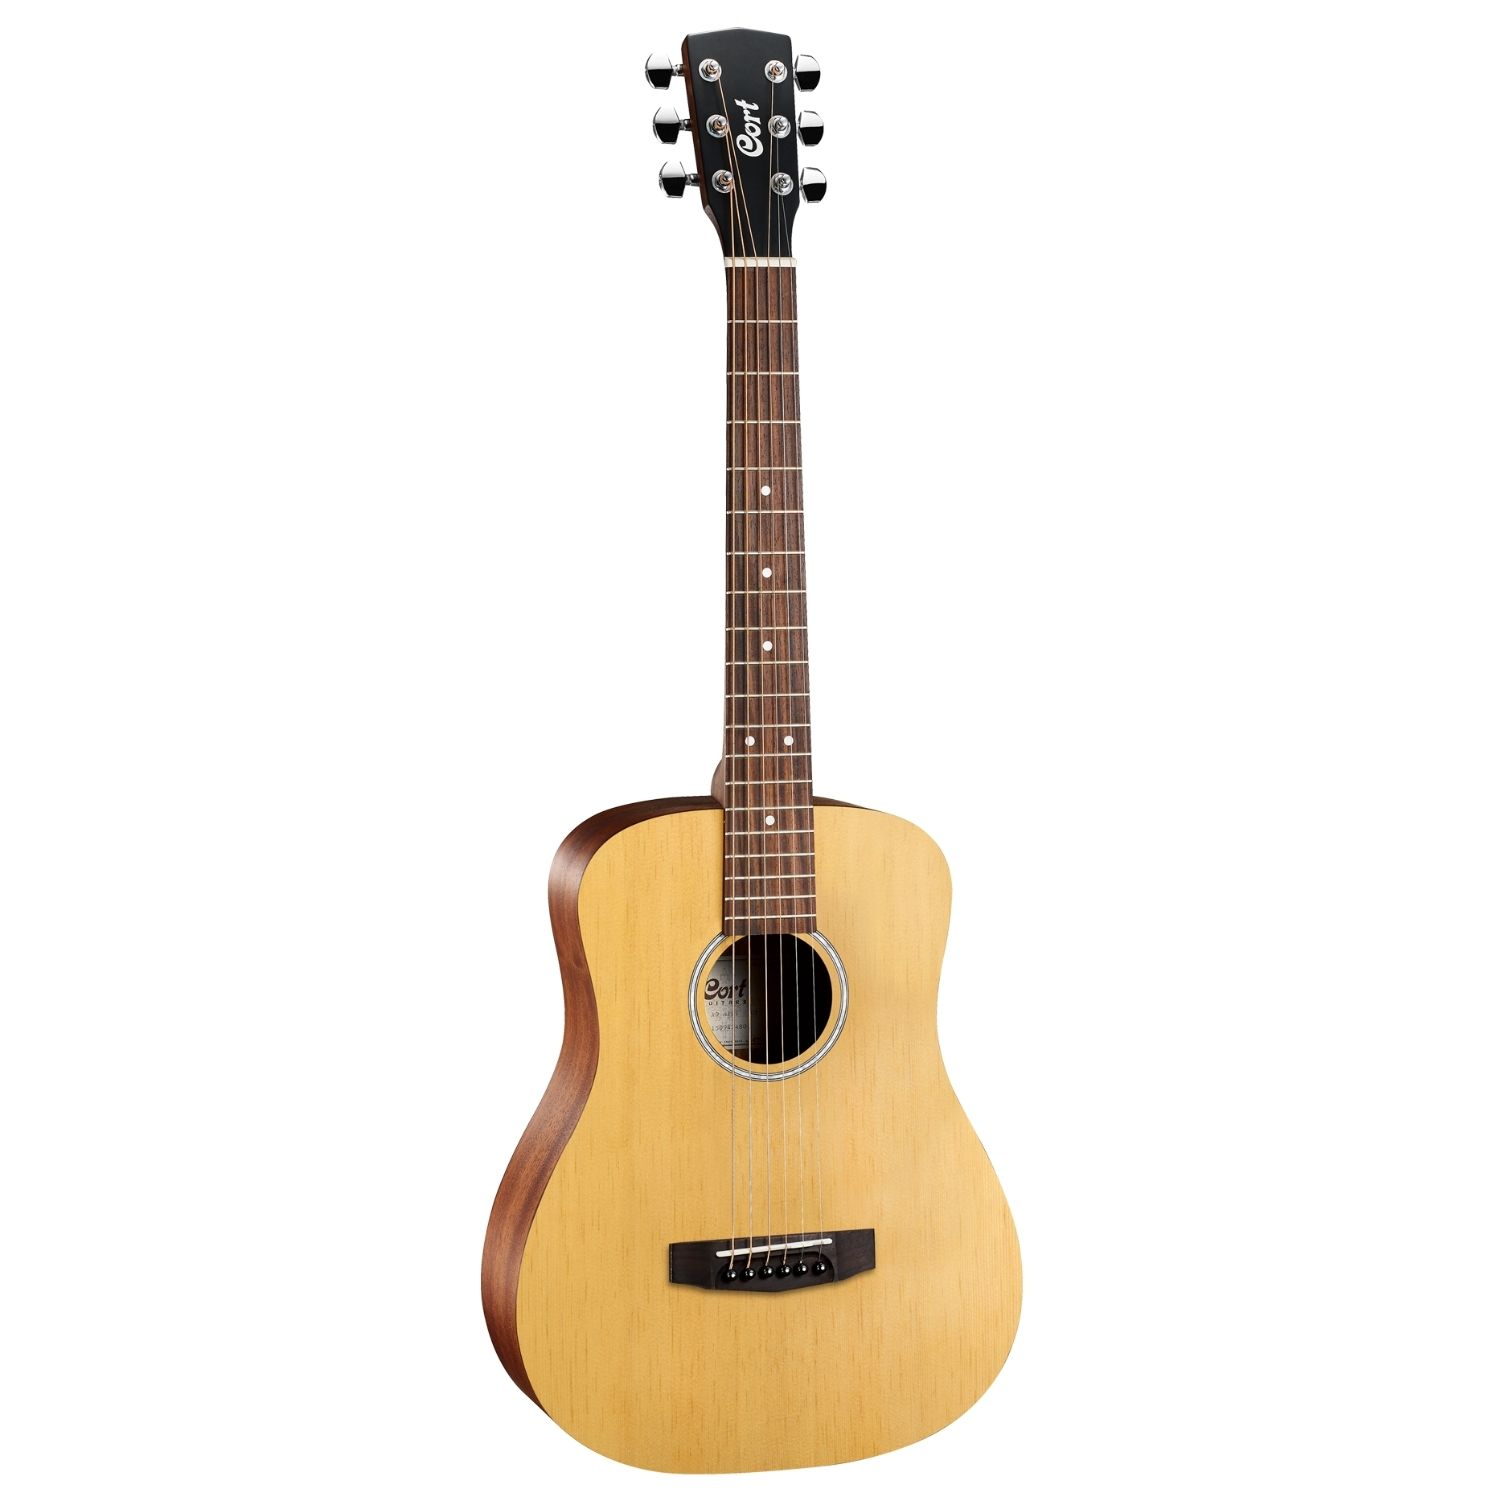 Cort AD mini Acoustic Guitar online in India